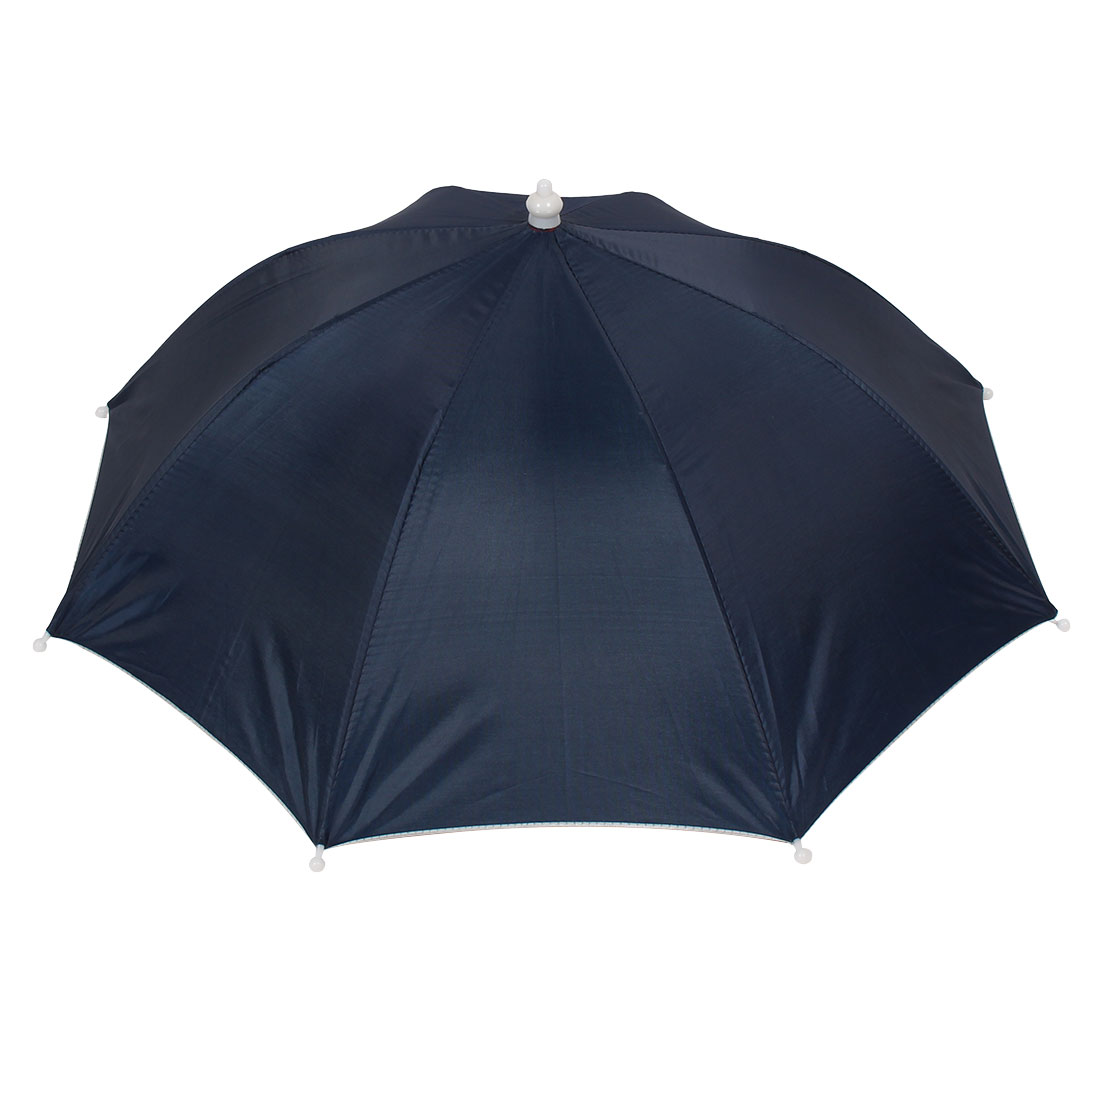 "Outdoor Sports 16.9"" Foldable Navy Blue Nylon Elastic Fishing Umbrella Hat"